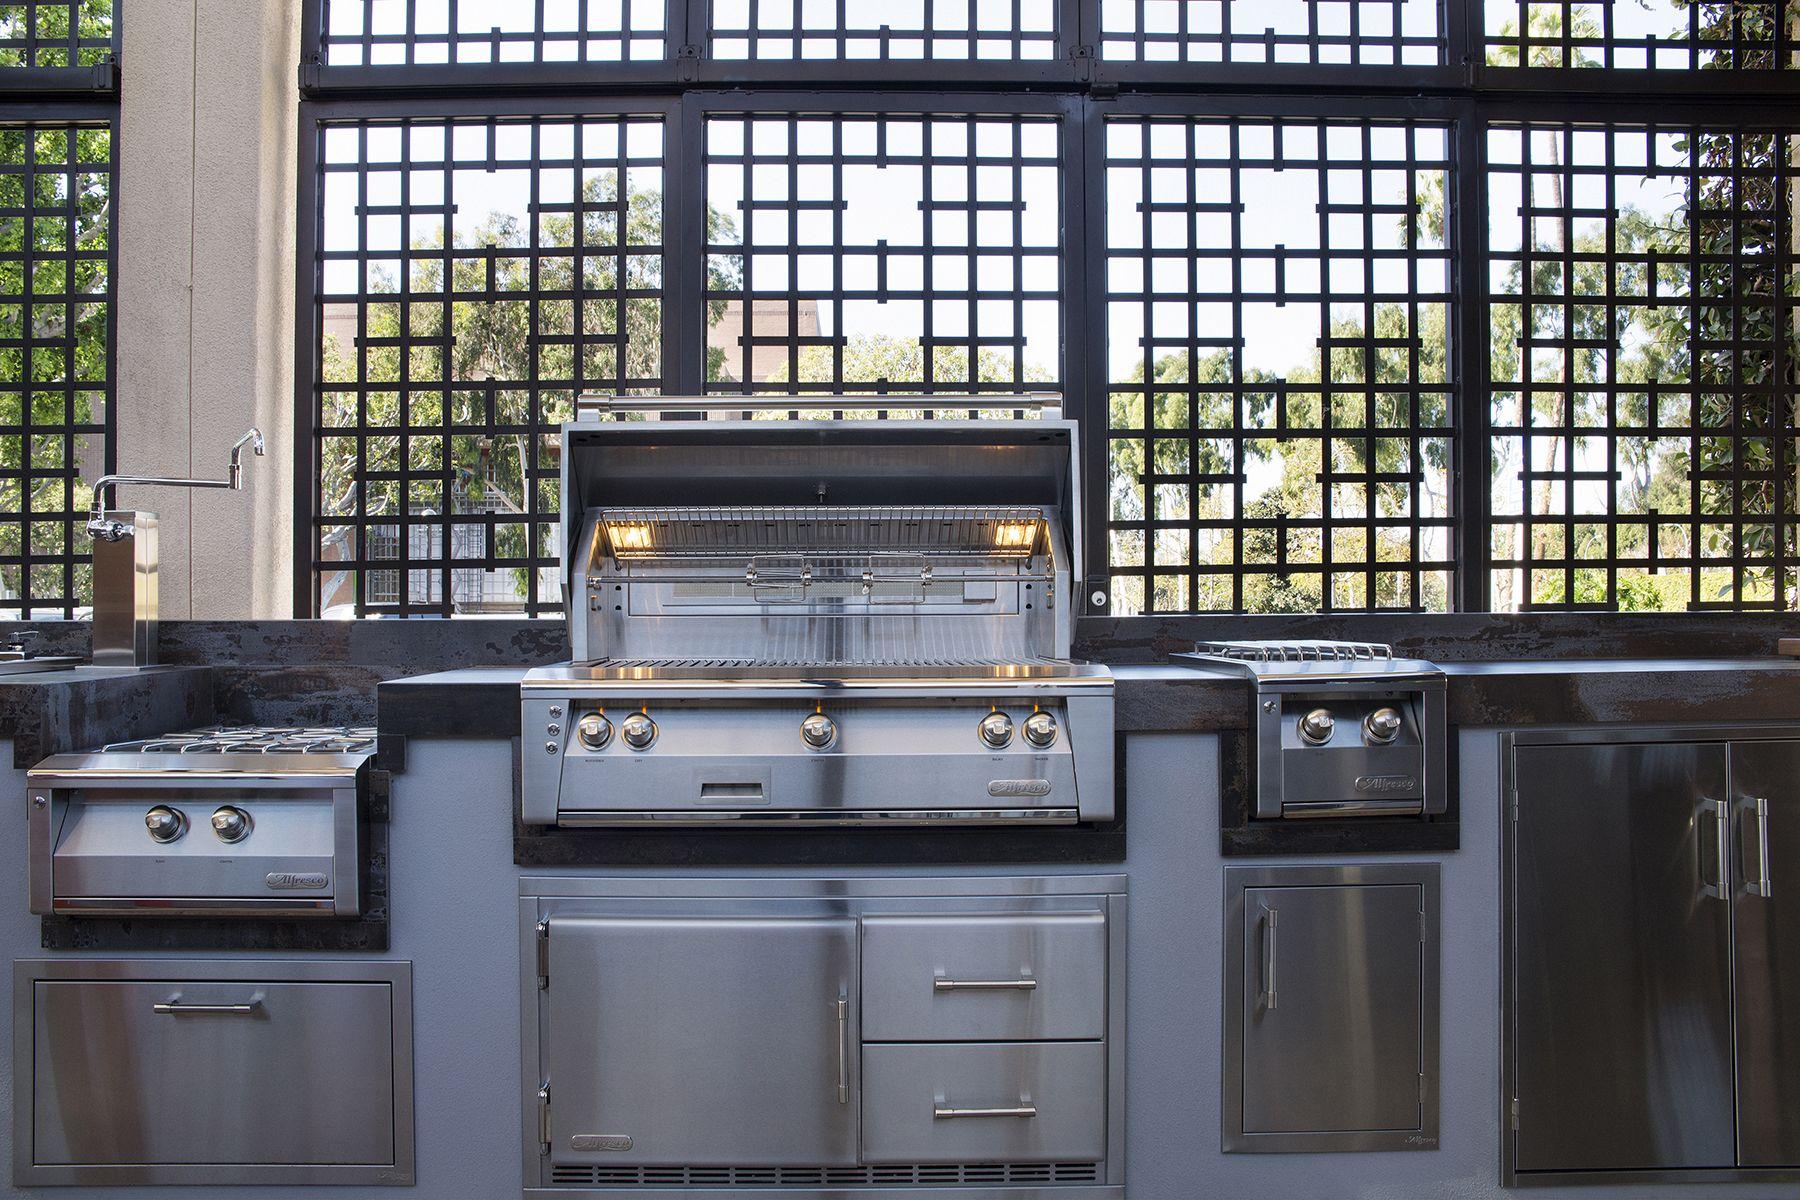 Alfresco Outdoor Kitchen With Alxe Grill Accessories And Pizza Oven Plus With Images Outdoor Kitchen Alfresco Wall Oven